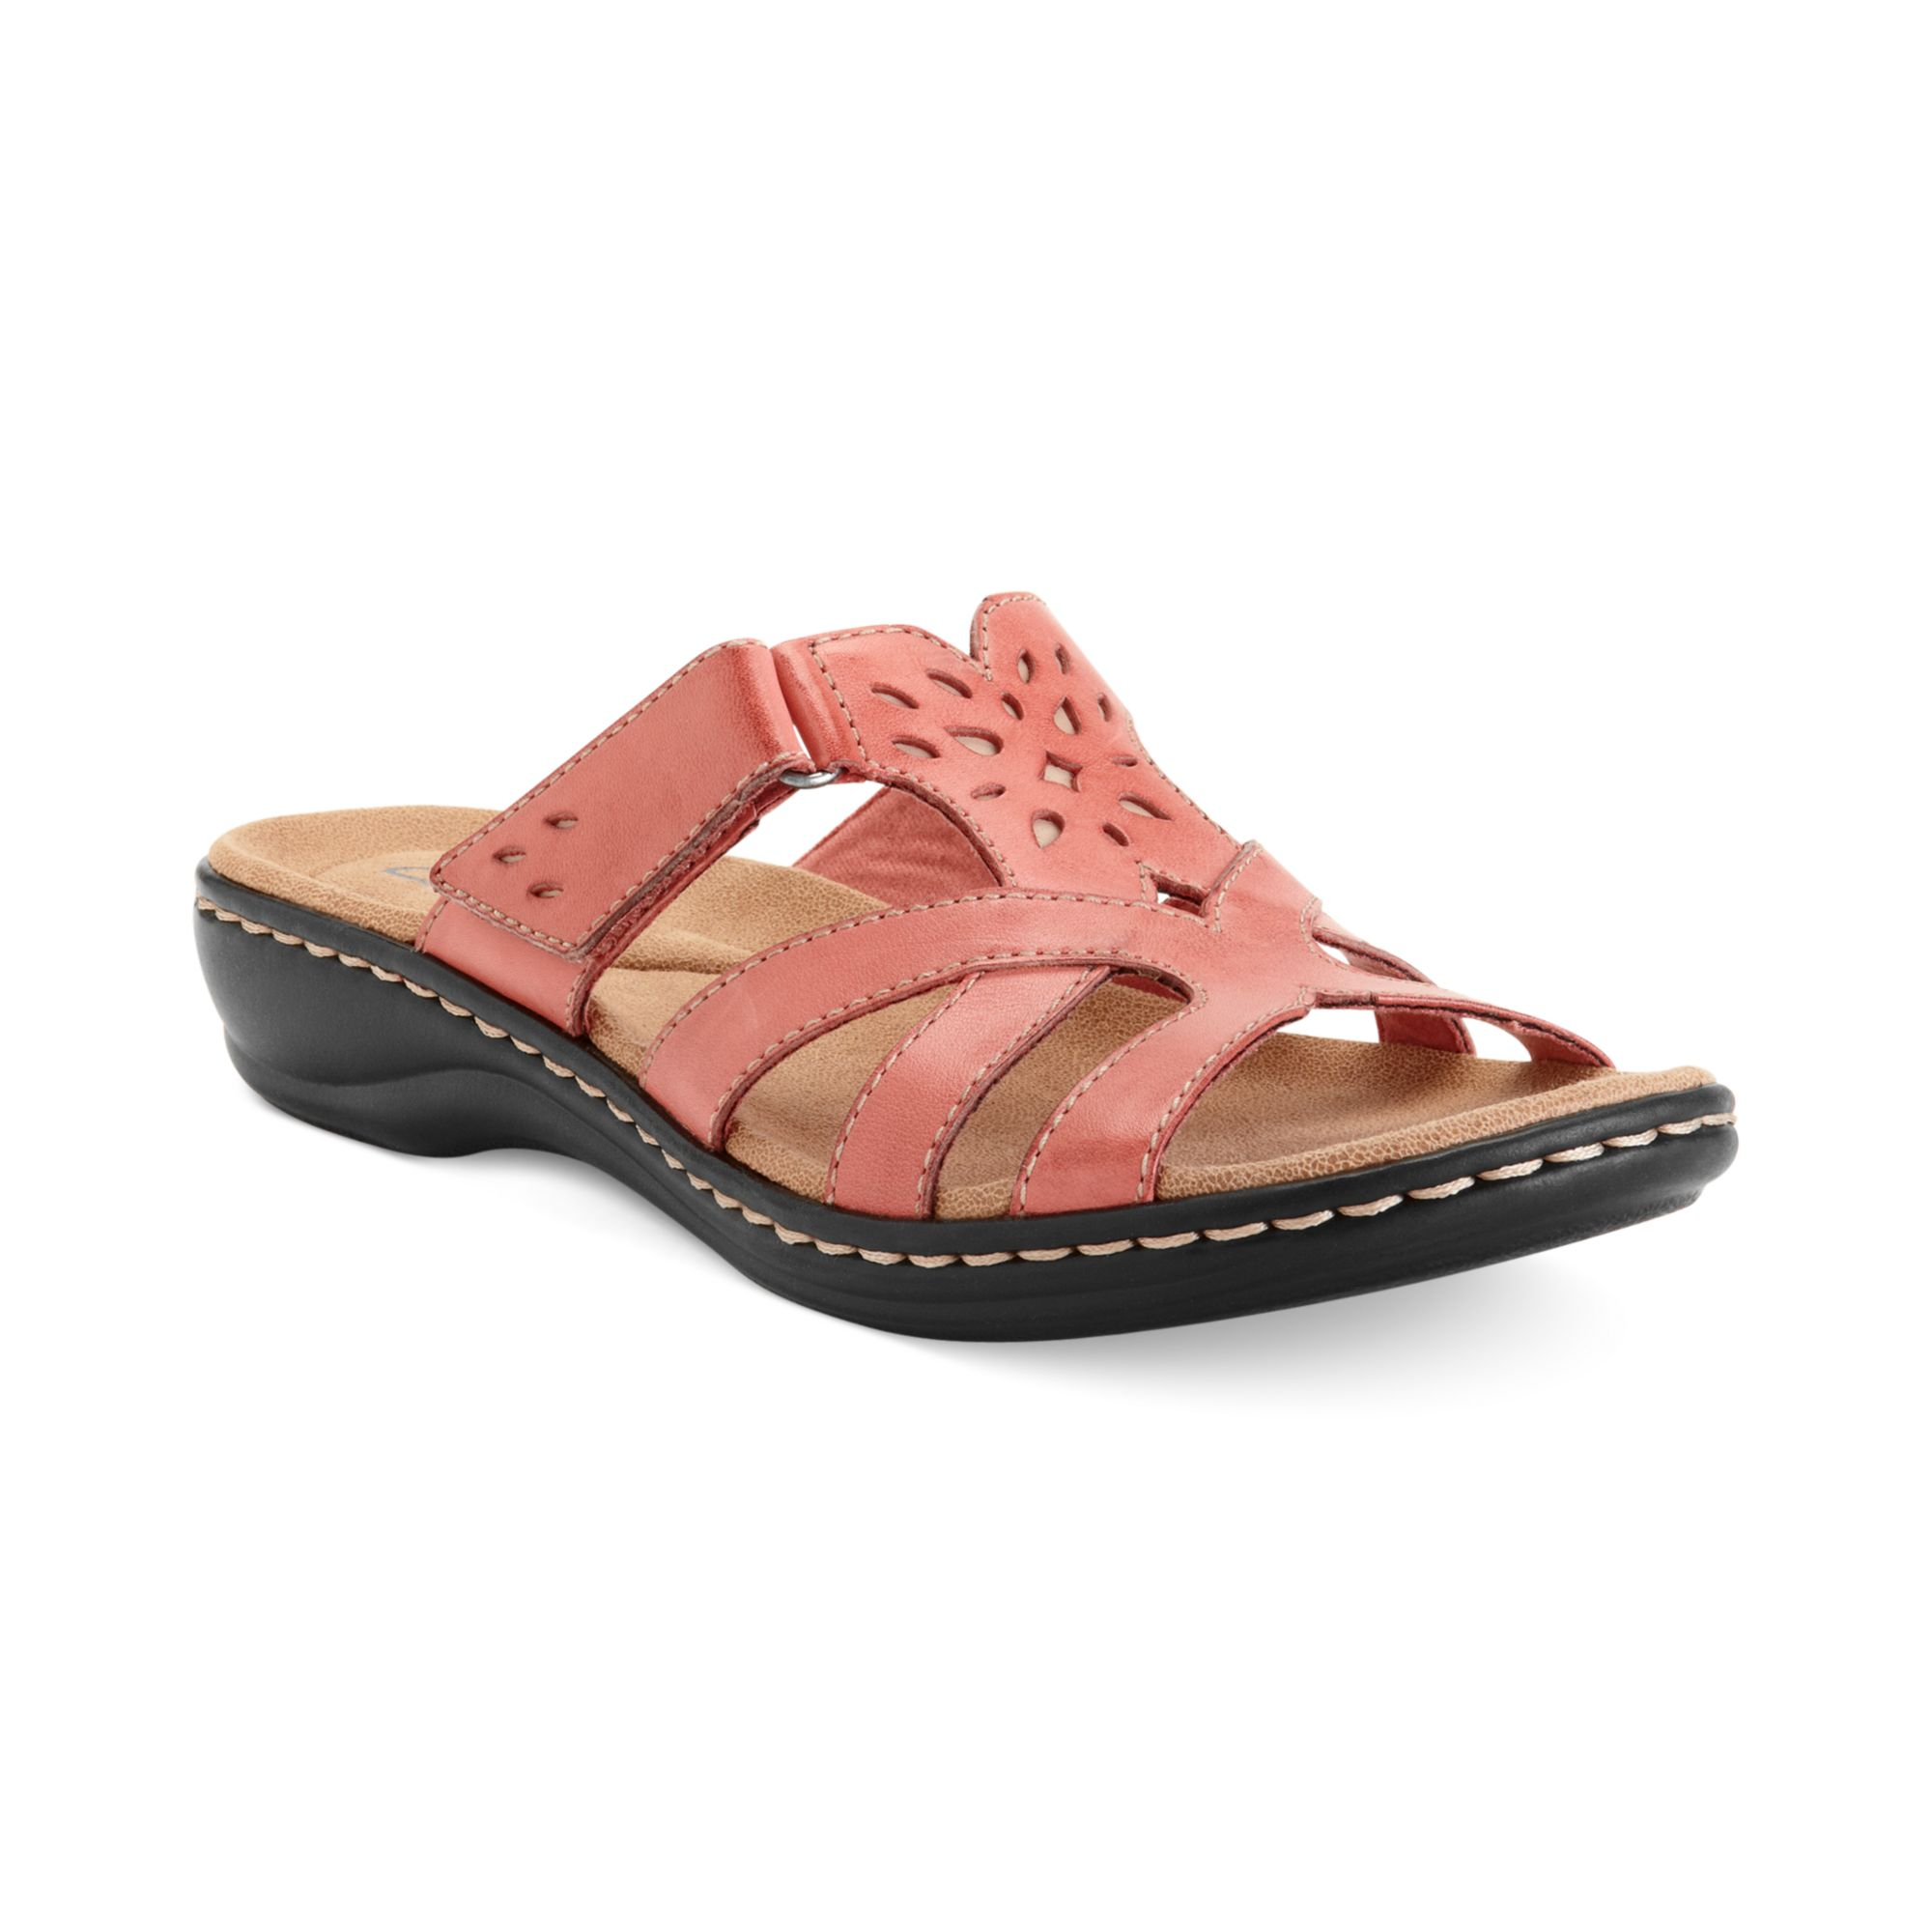 Brilliant Clarks Womens Shoes Lexi Jasmine Sandals In Brown Mink  Lyst